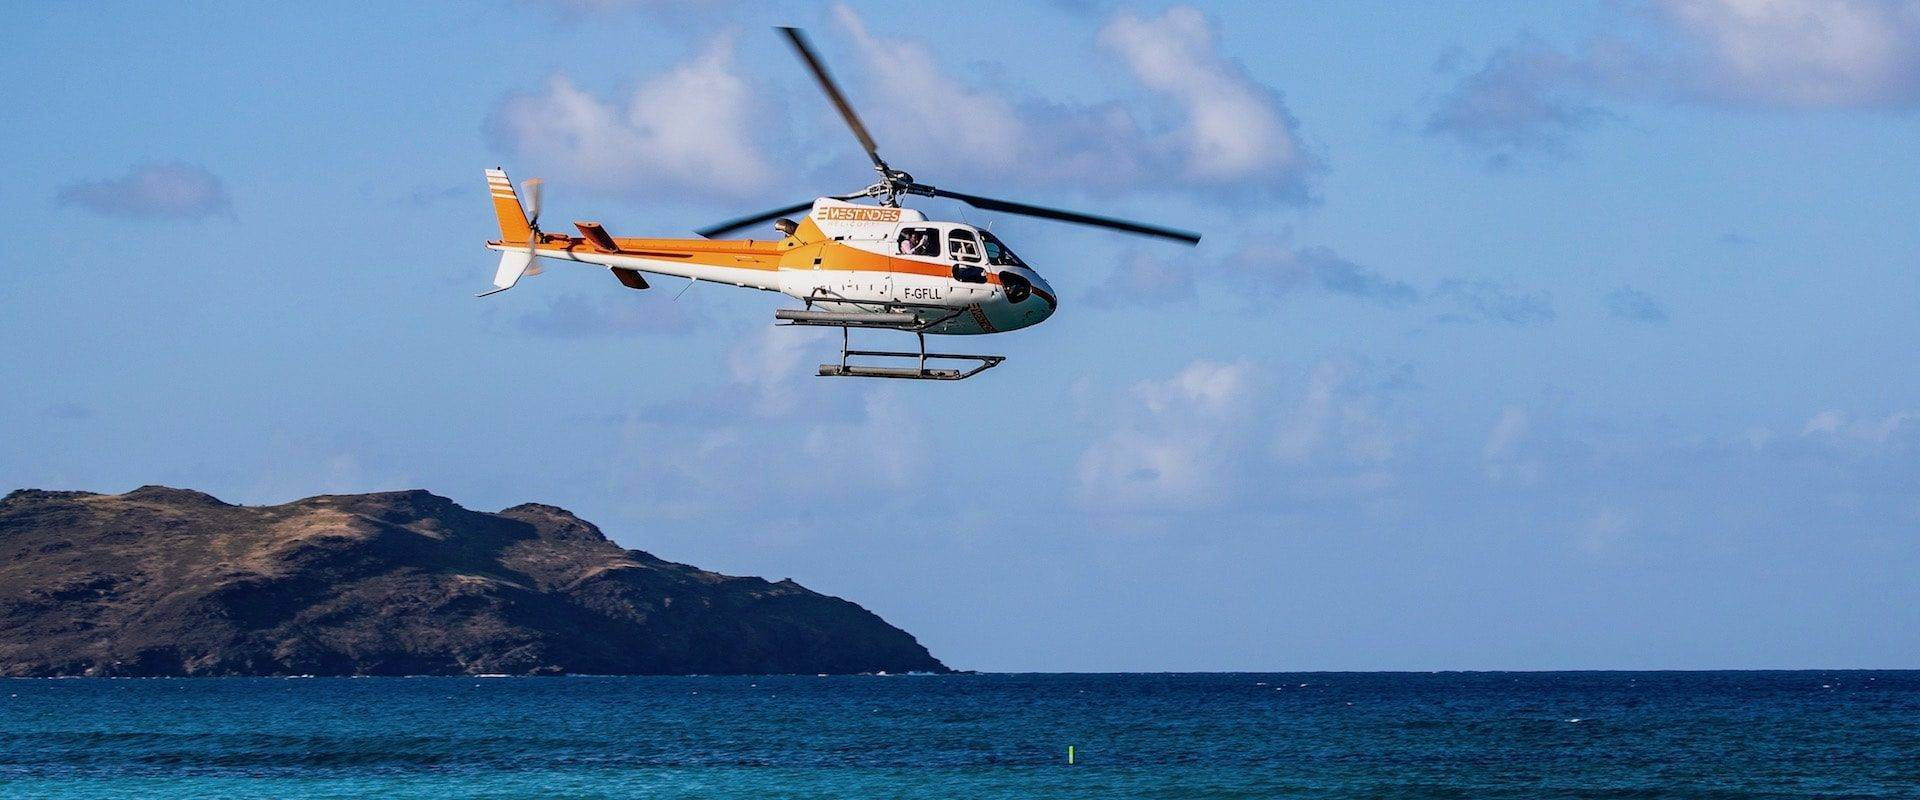 1-West-Indies-Helicoptere-St-Barth